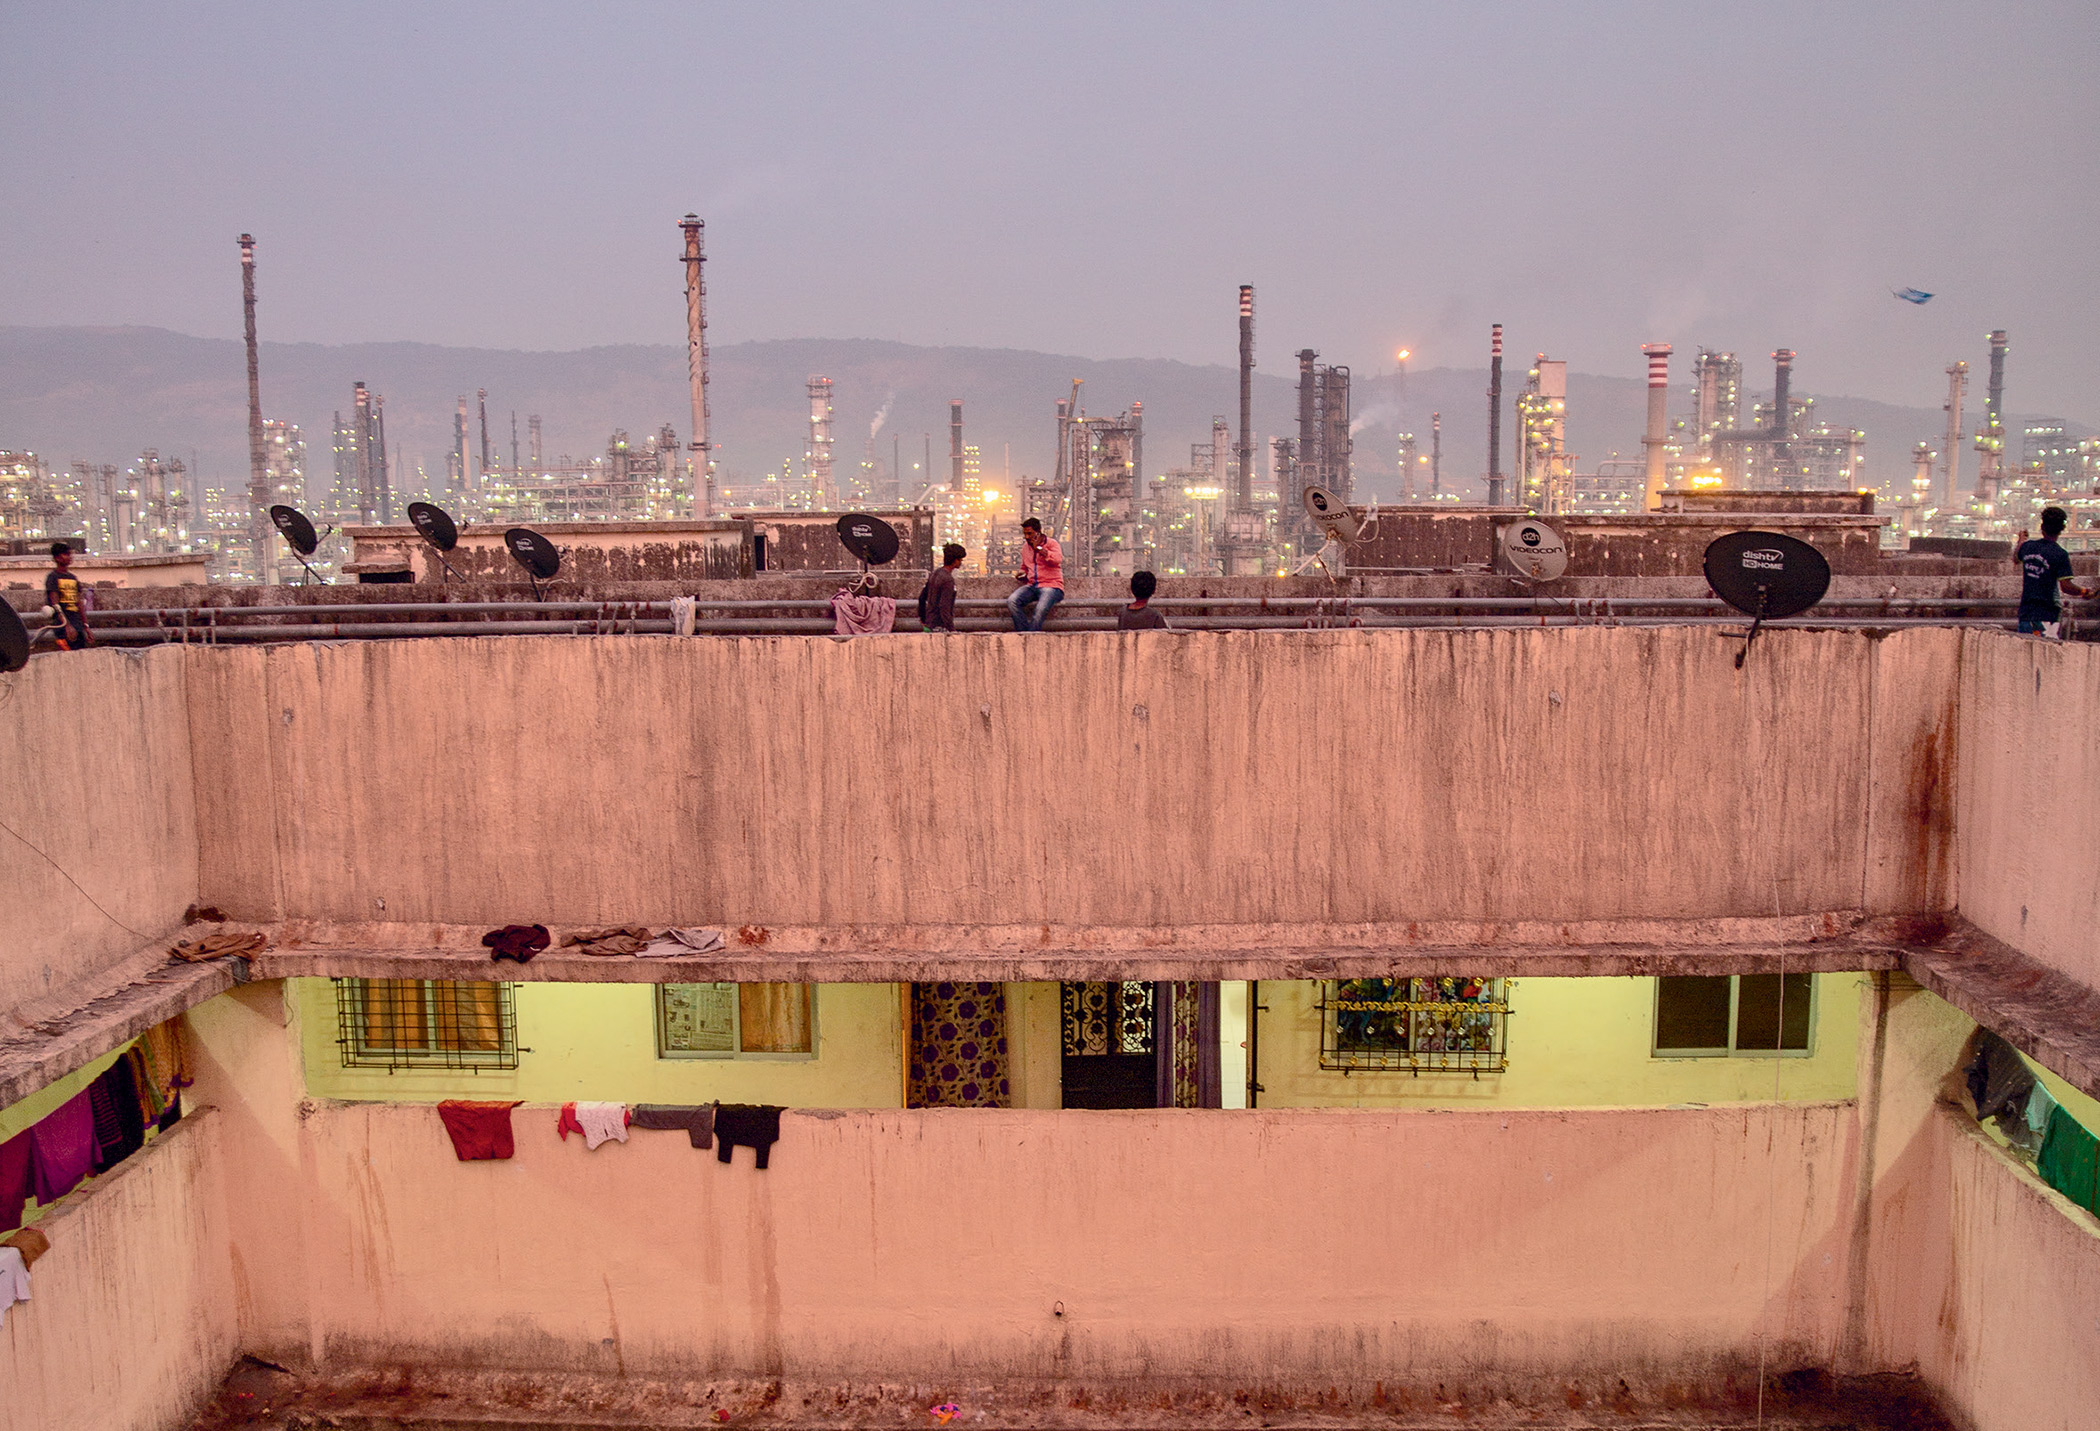 Room with a view: Residents of Mahul's resettlement colony are forced to live in a polluted industrial area.